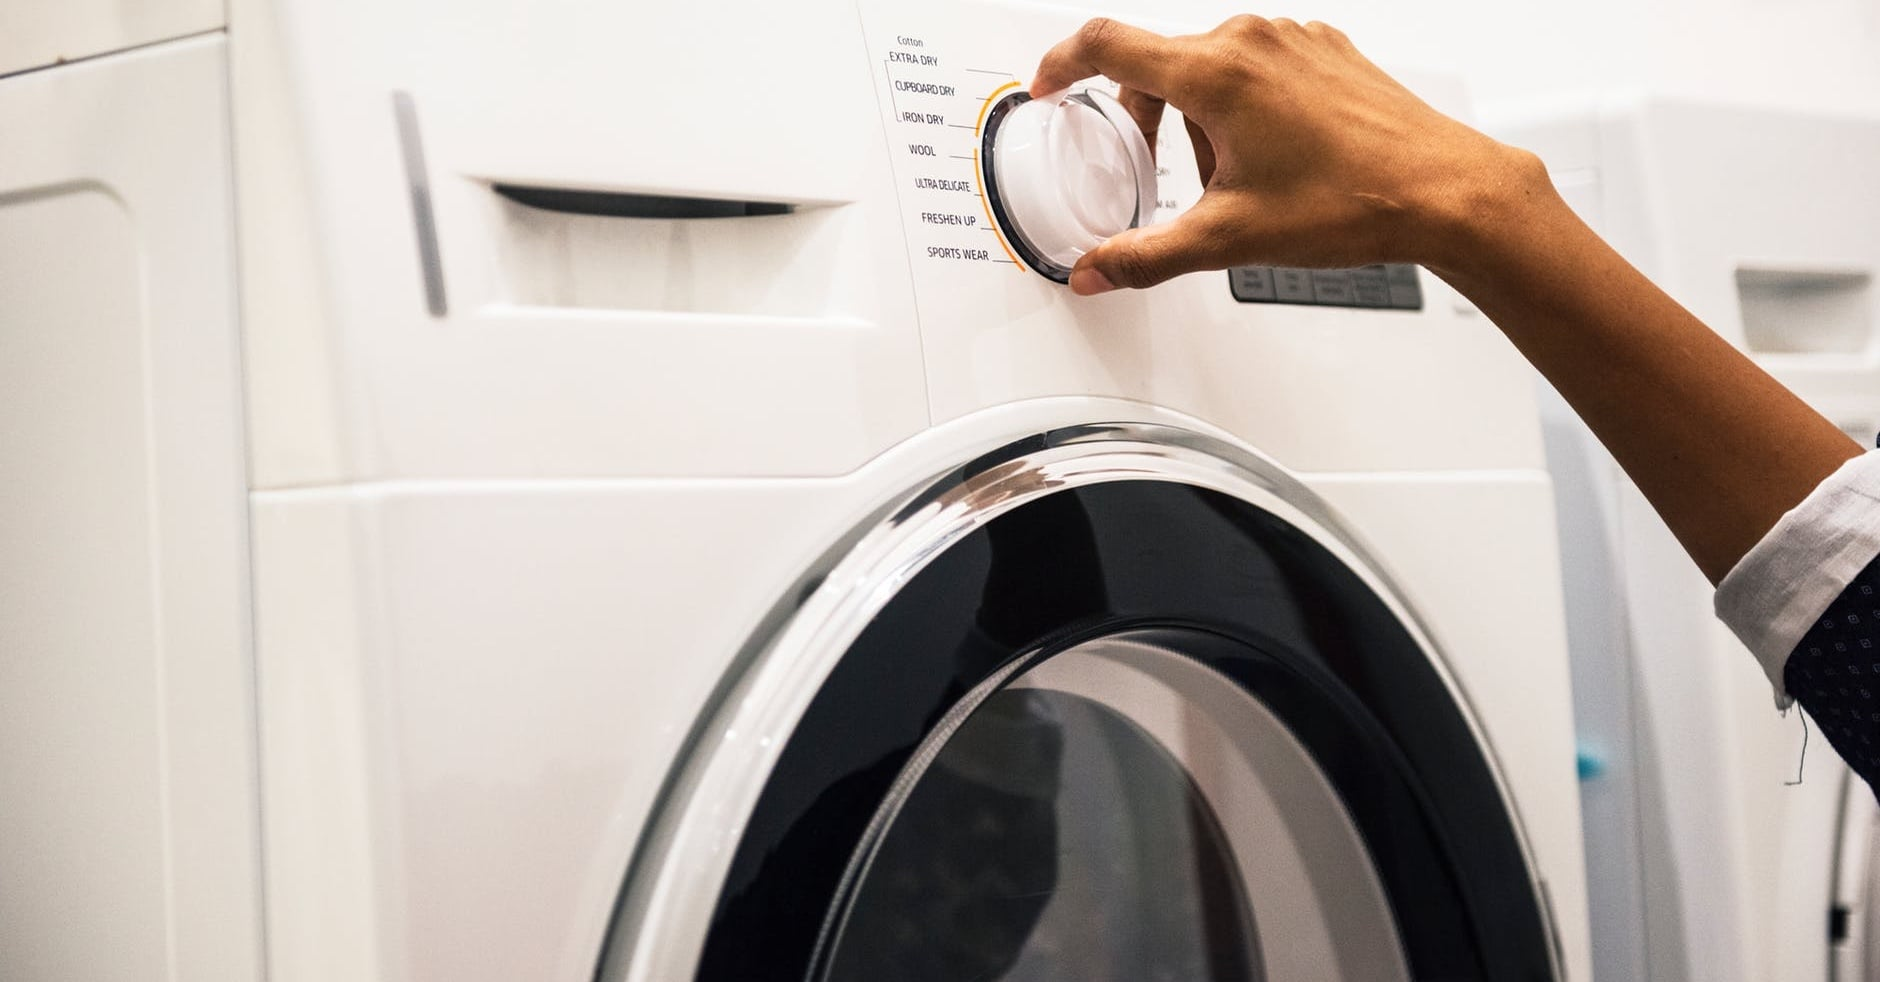 I Put Ice Cubes in My Dryer Instead of Ironing My Clothes, and the Result Blew My Mind